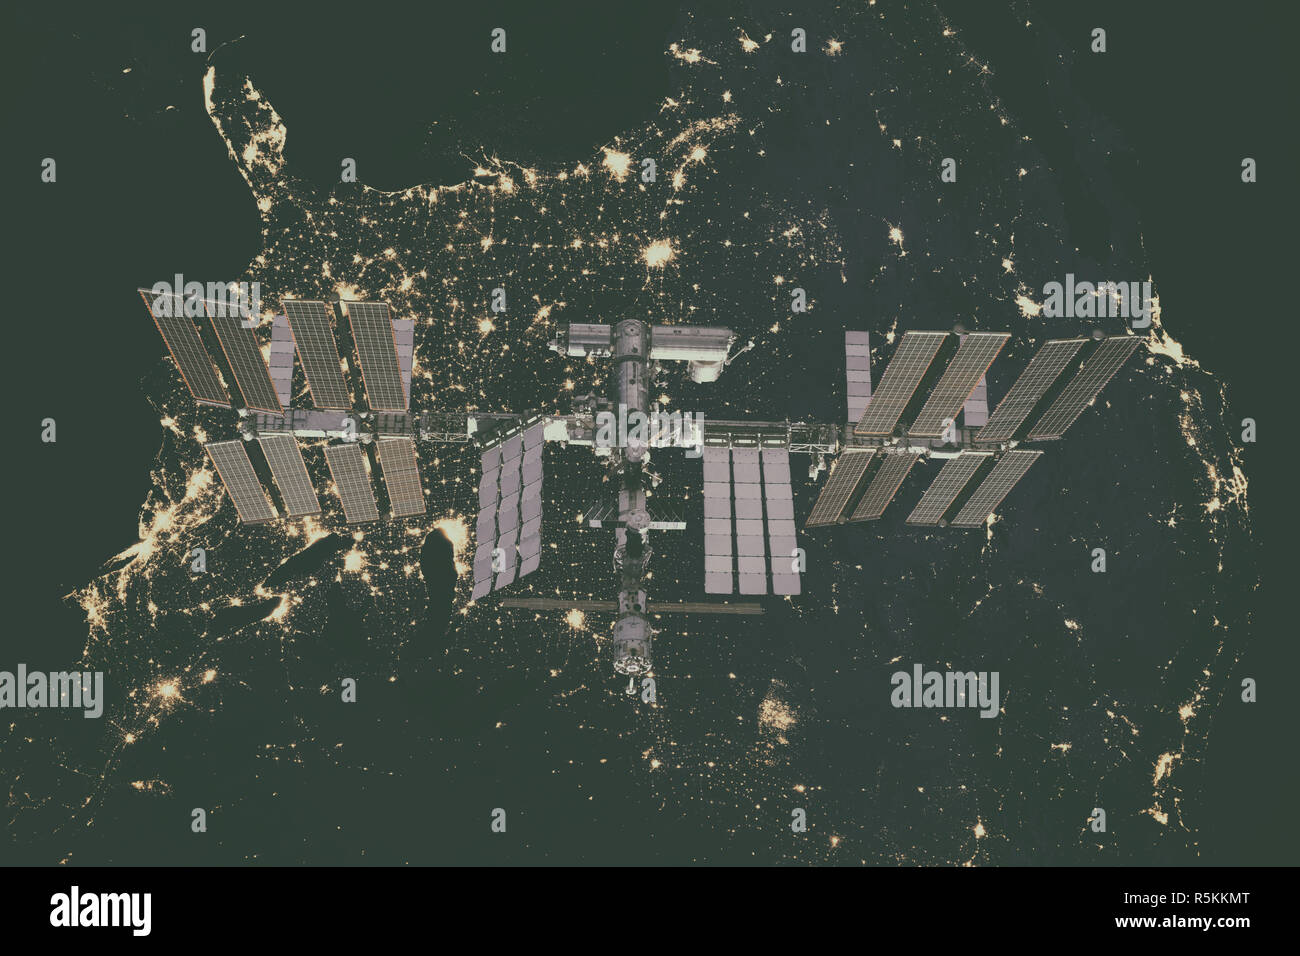 International Space Station over USA. - Stock Image